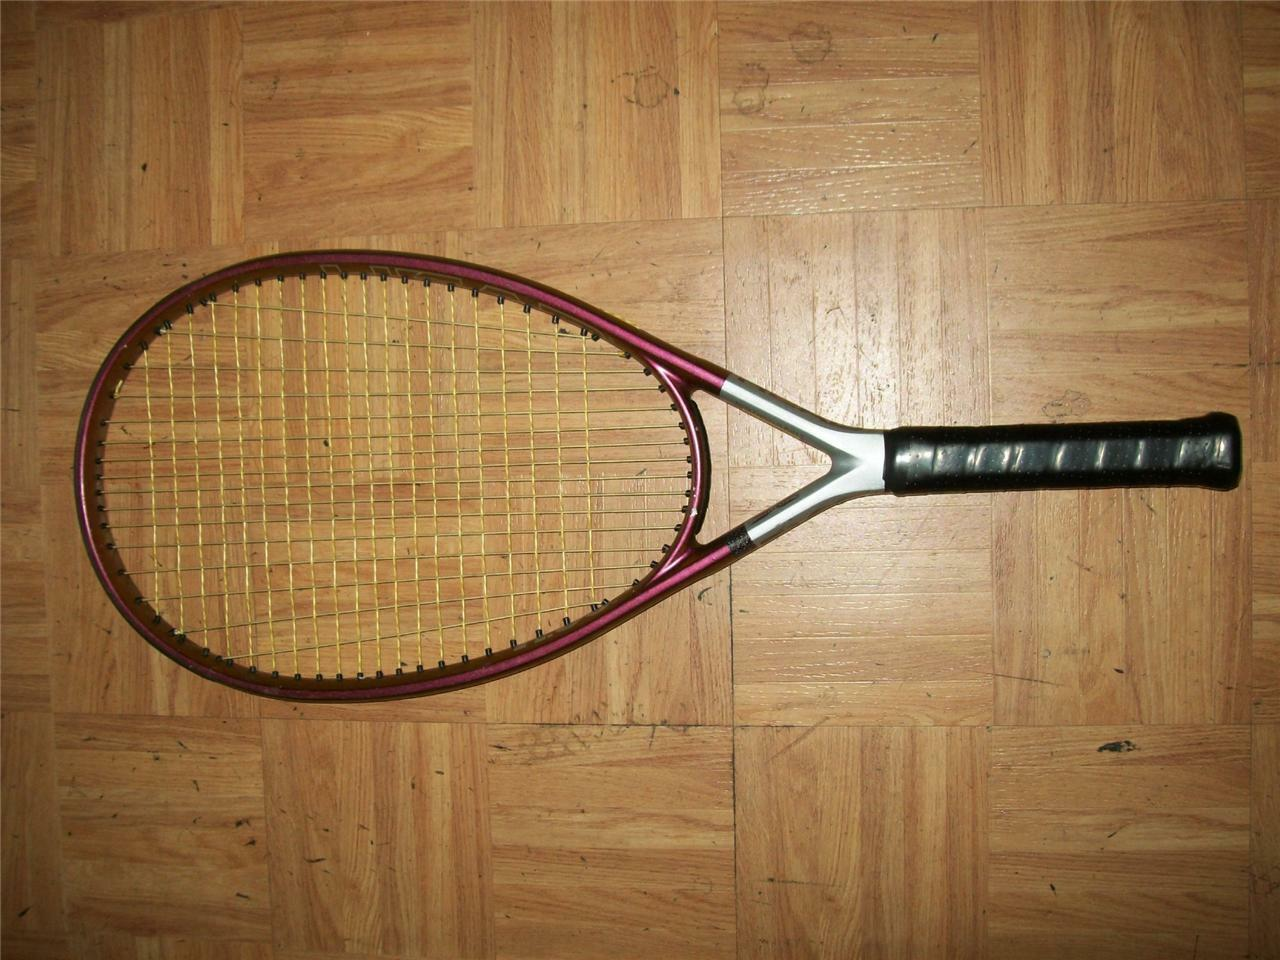 Head Ti.S8 Oversize 4 3 8 grip Tennis Racquet Made in Austria